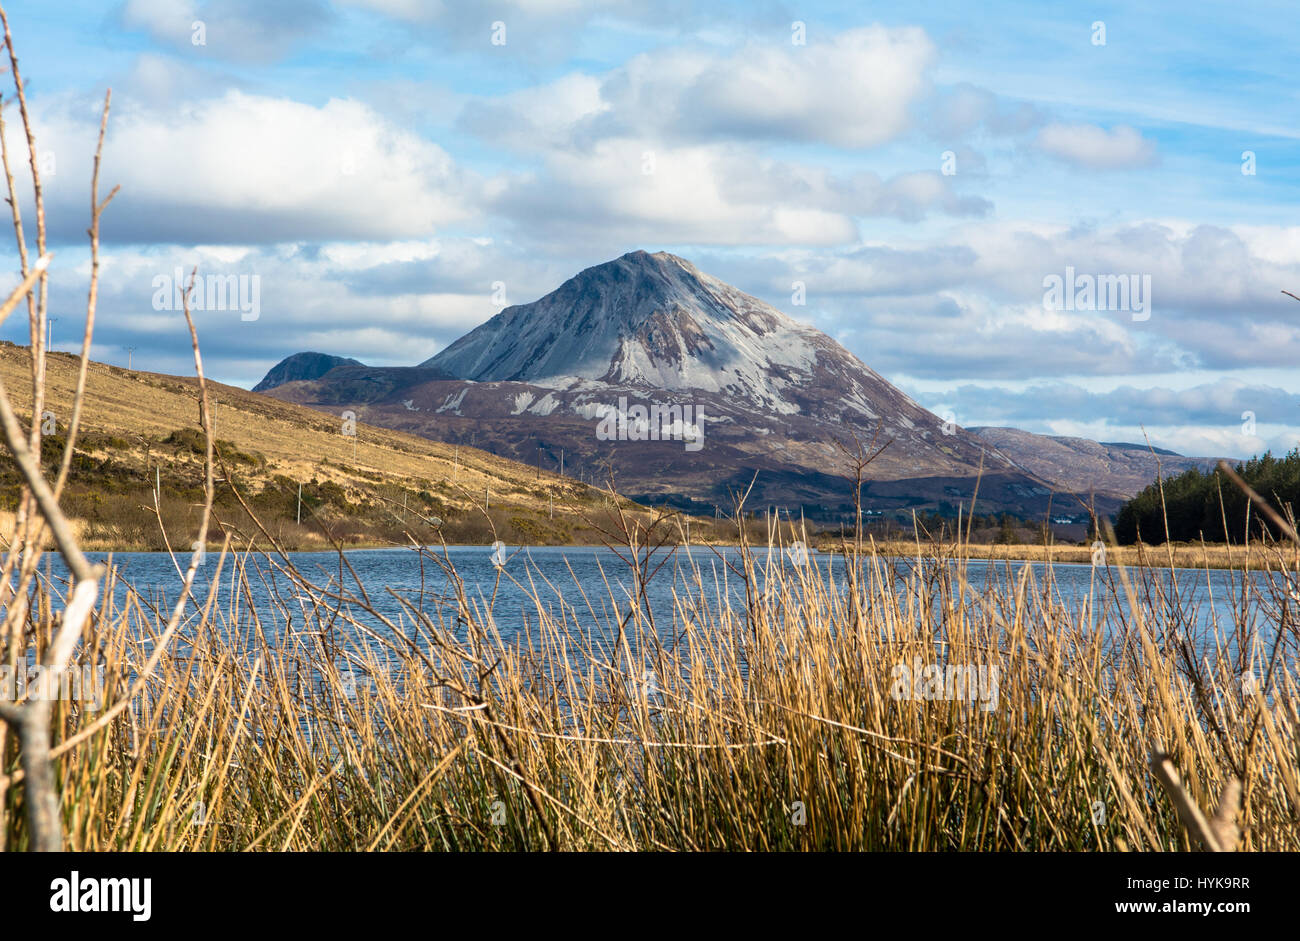 Errigal Mountain Gweedore Dunlewey Donegal Ireland Europe - Stock Image